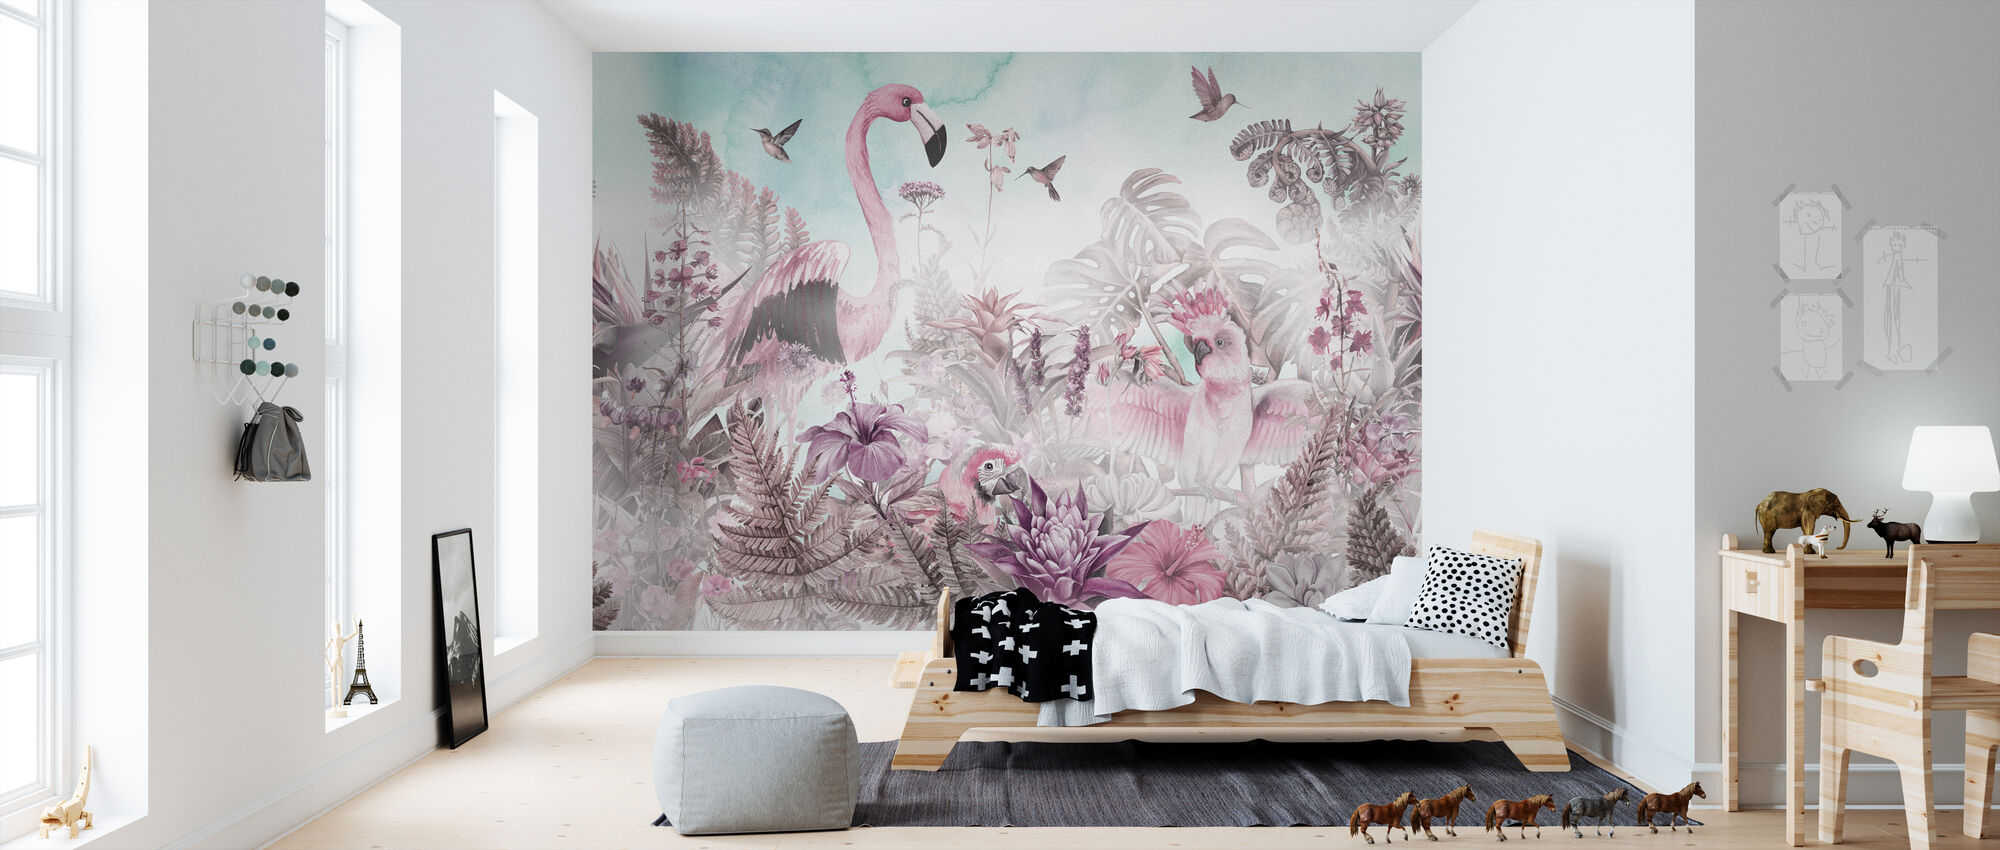 Giant Flamingo - Roze - Behang - Kinderkamer